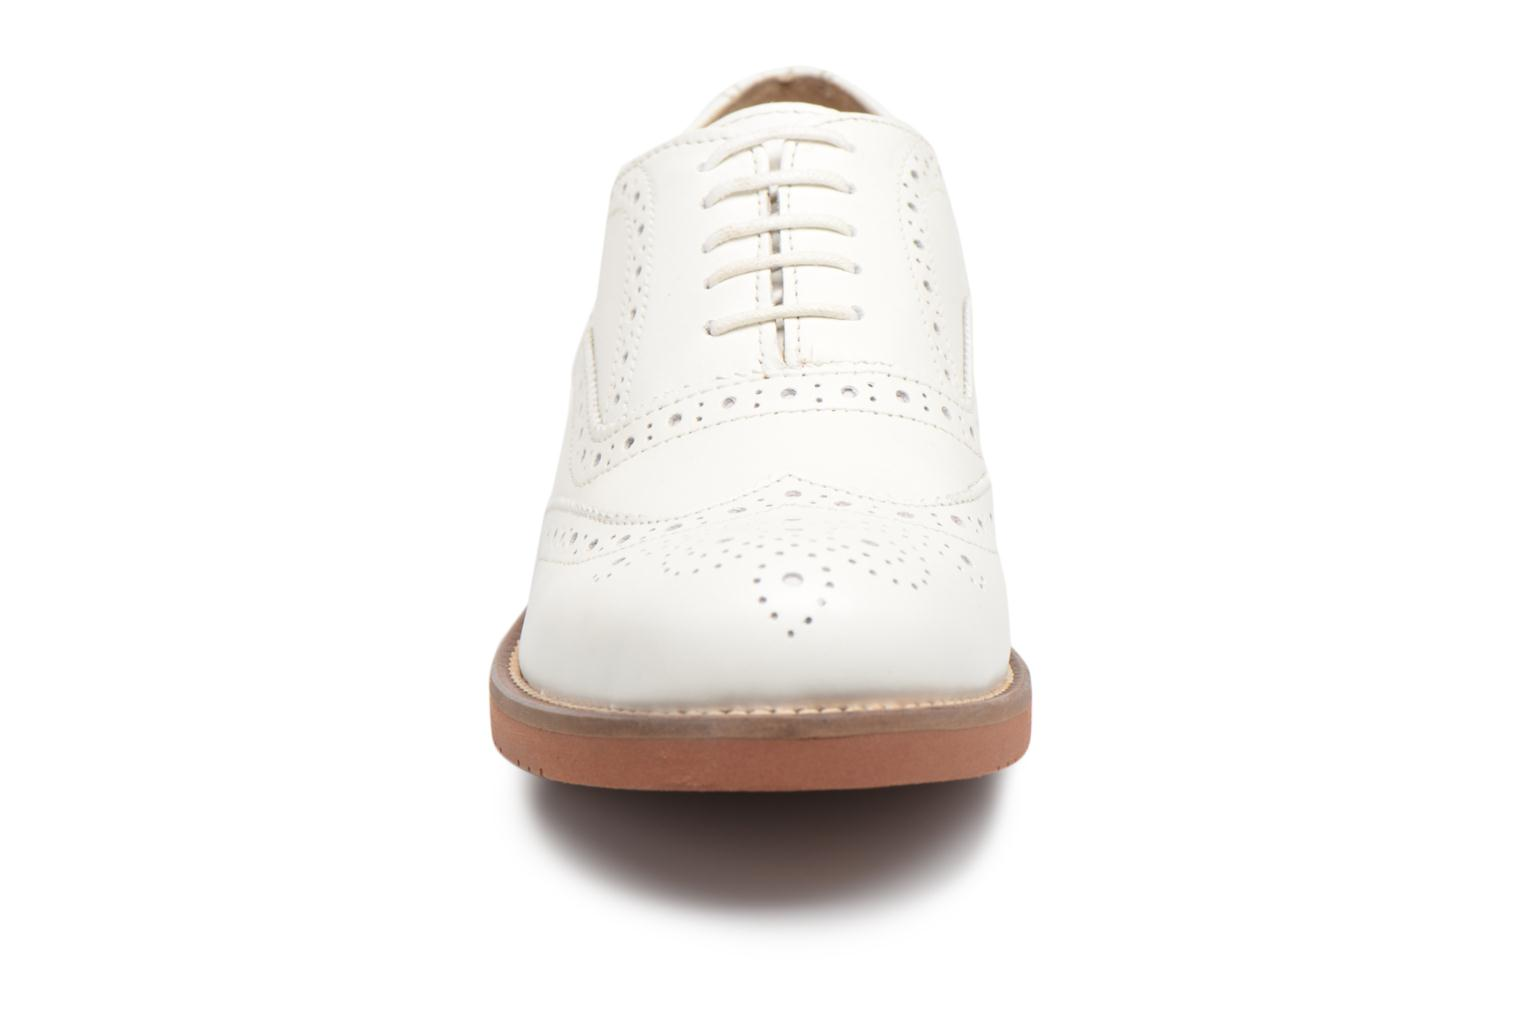 G.H. Bass ALBANY Oxford Brogue Metal Wit